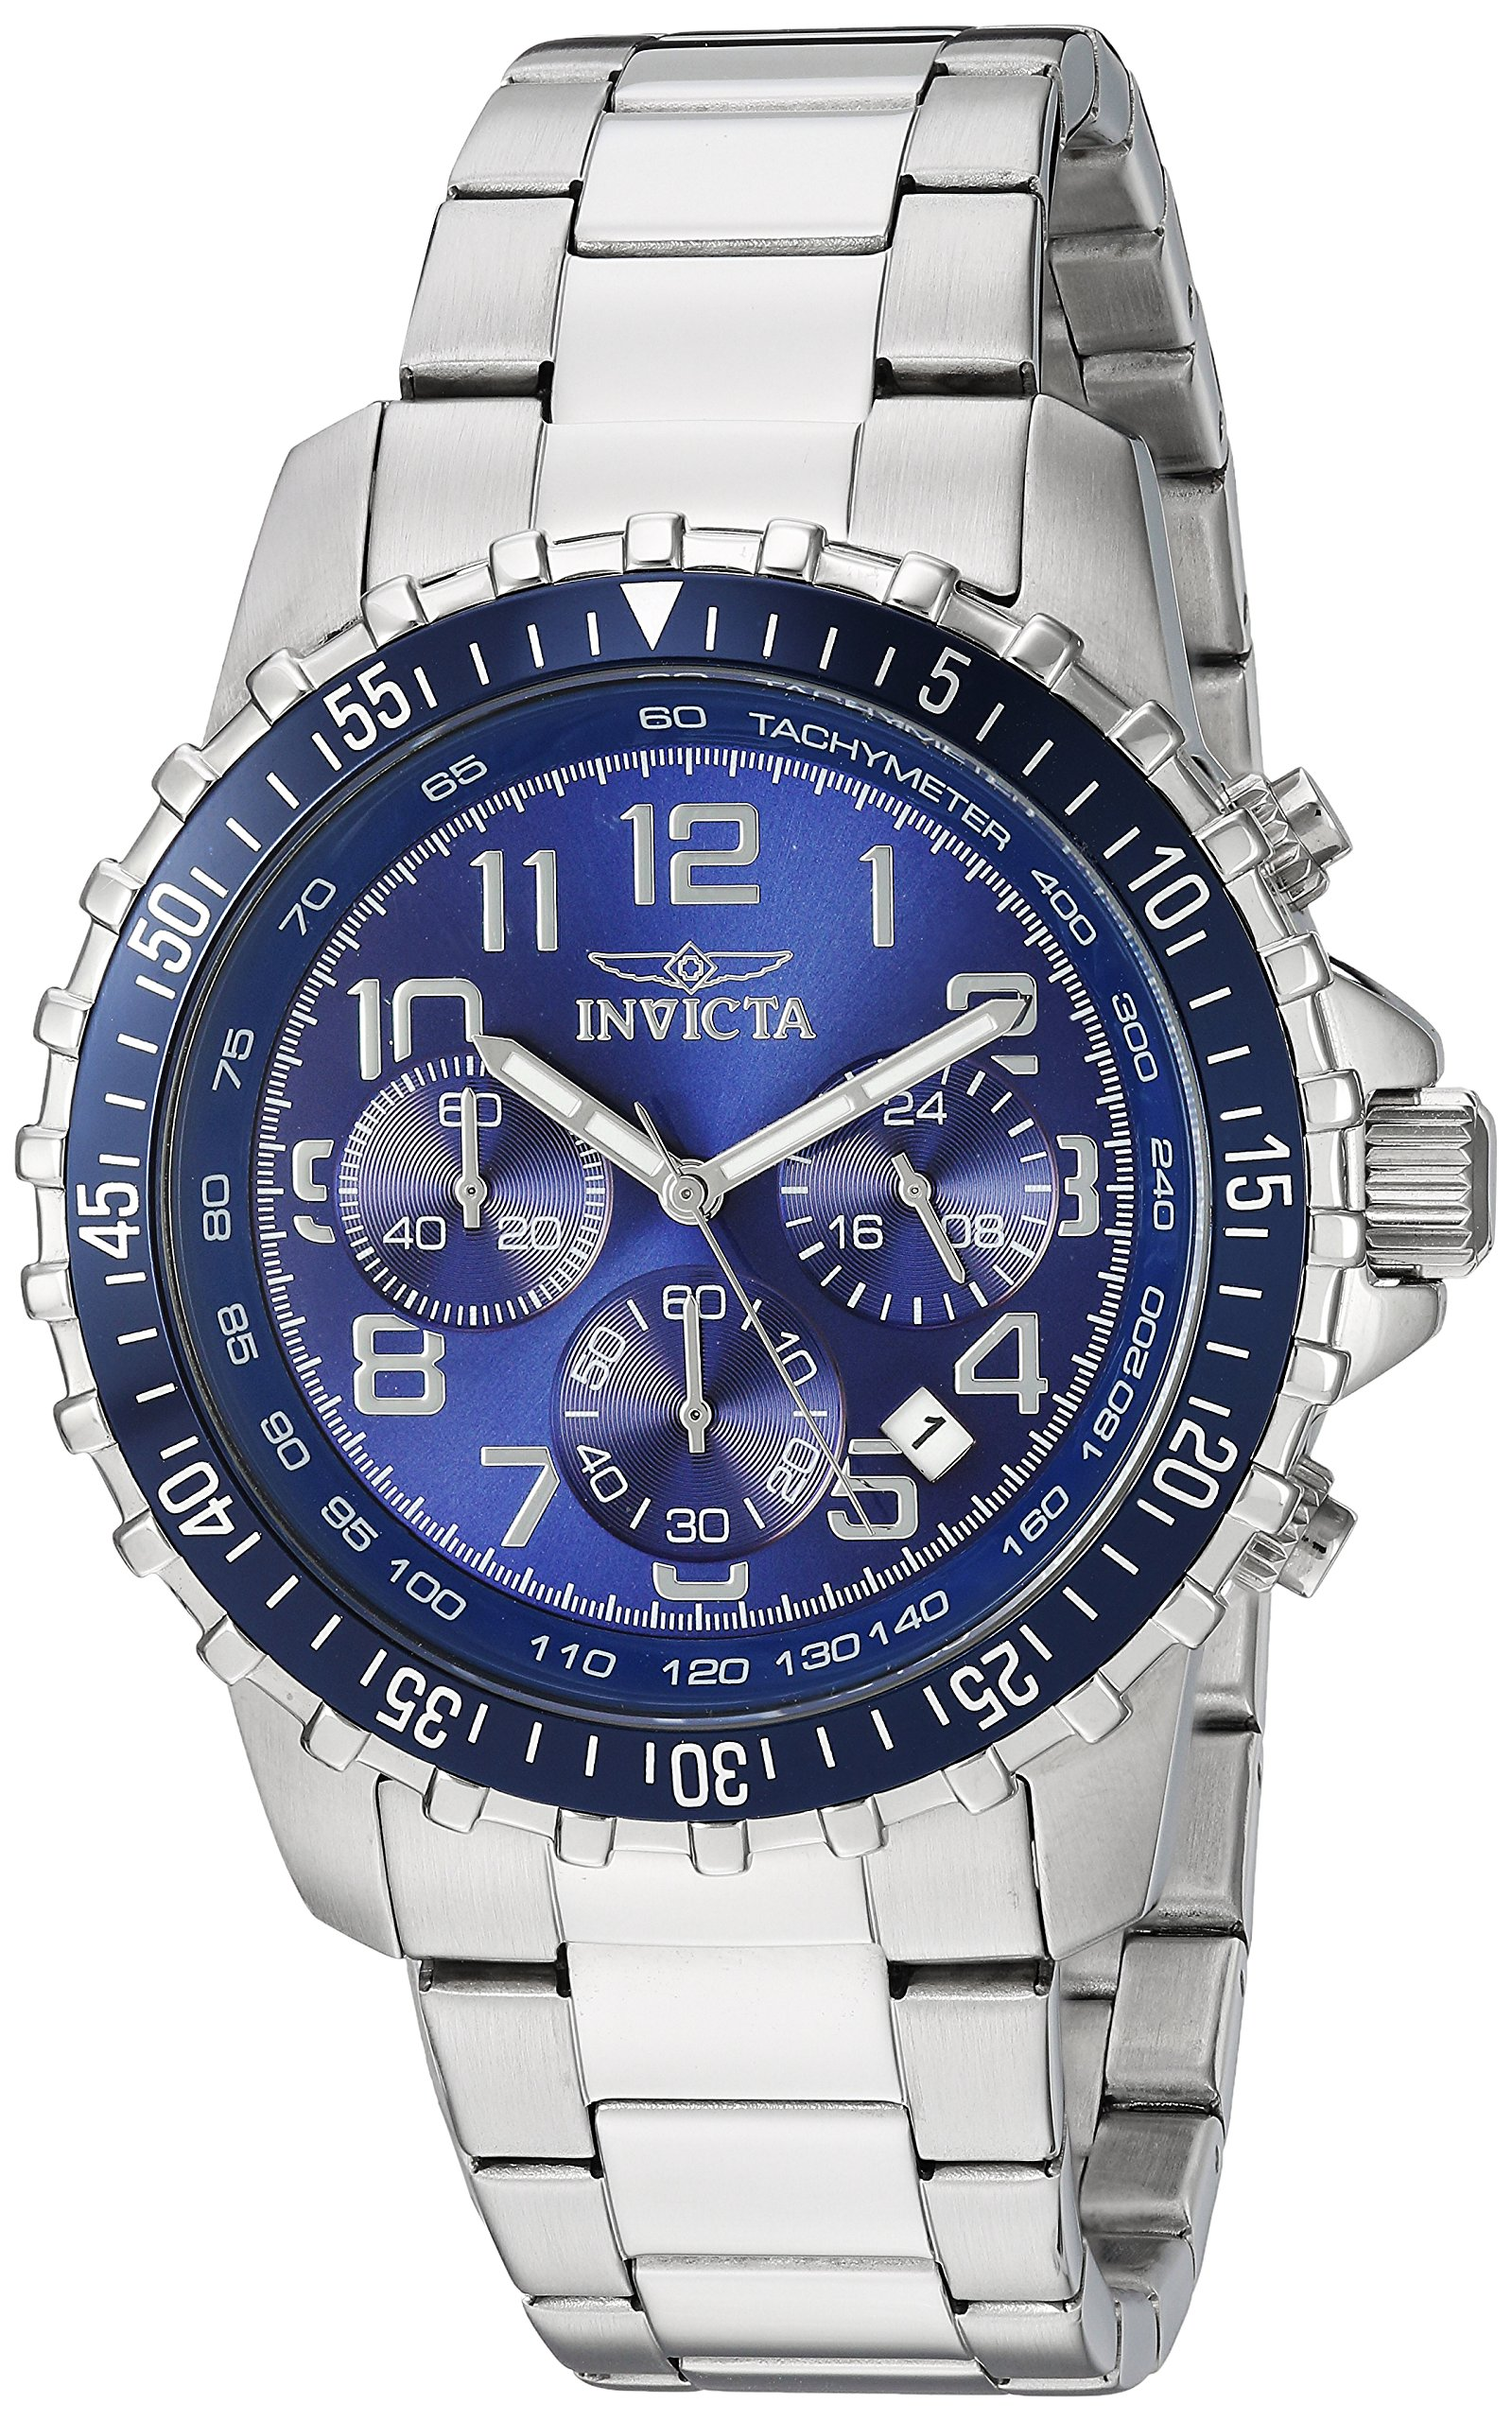 Invicta Men's 6621 II Collection Chronograph Stainless Steel Silver/Blue Dial Watch by Invicta